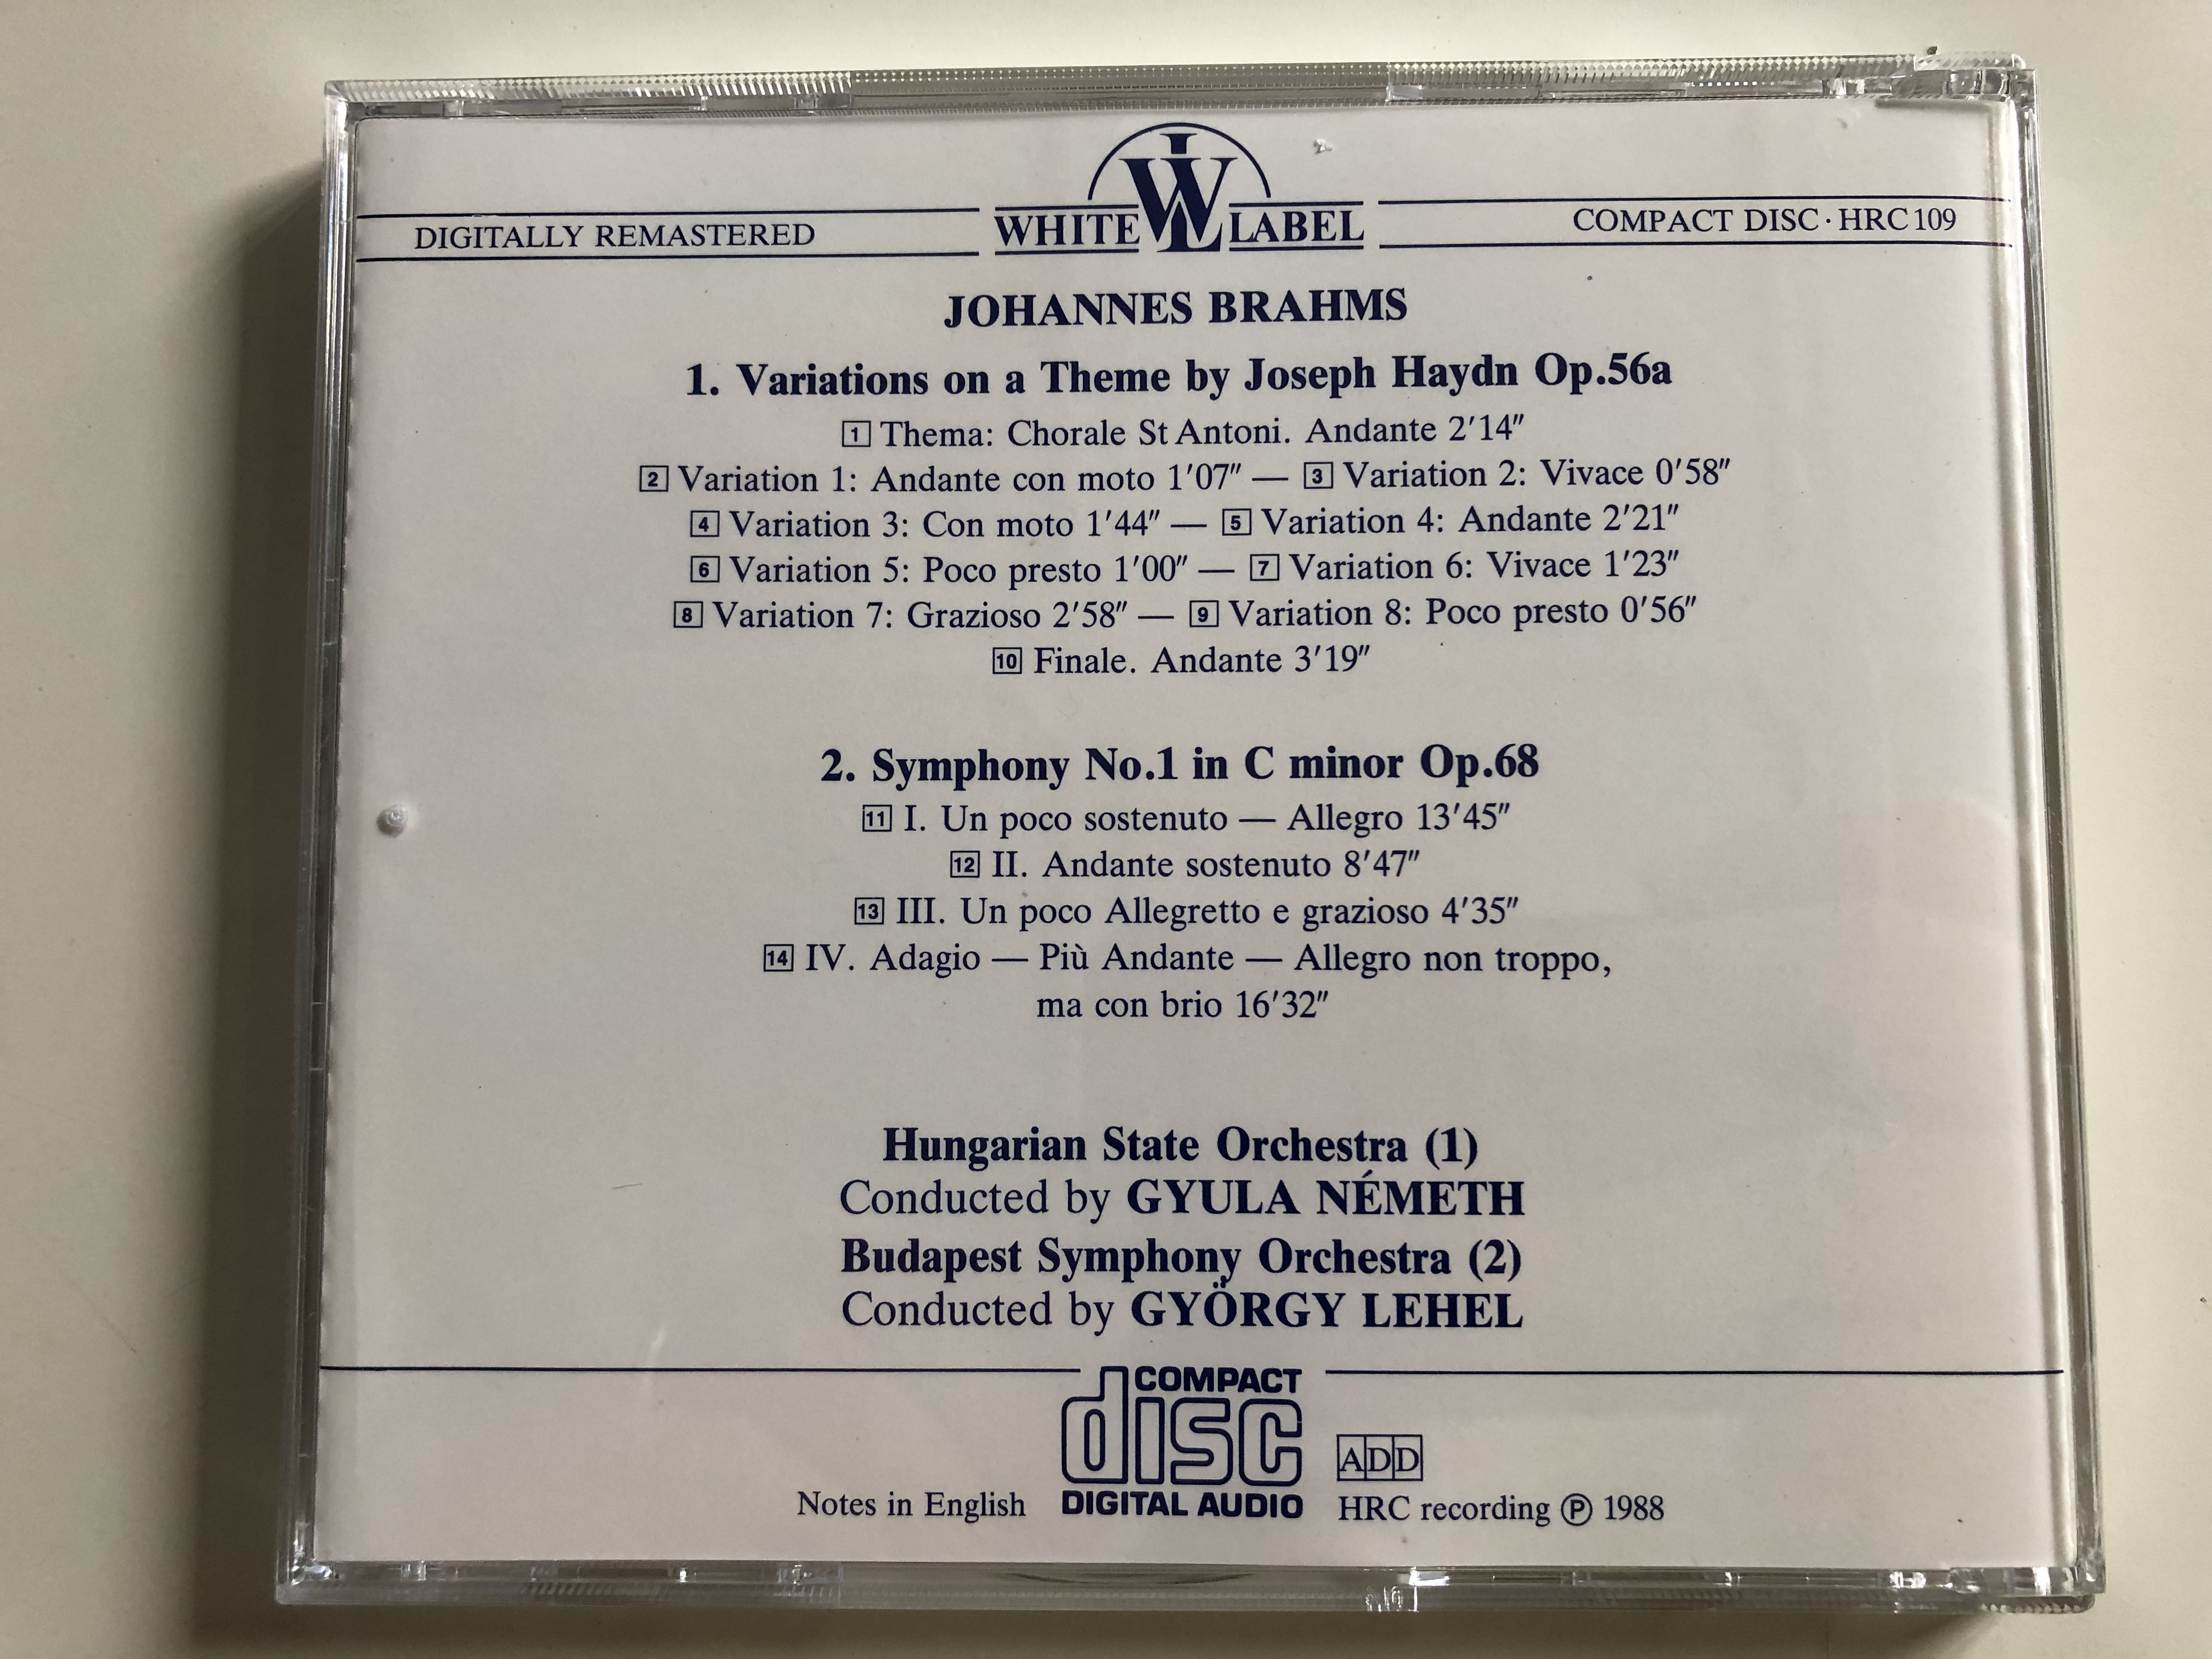 johannes-brahms-haydn-variations-symphony-no.1-hungarian-state-orchestra-budapest-symphony-orchestra-conducted-by-gyula-n-meth-gy-rgy-lehel-hungaroton-white-label-audio-cd-hrc-109-5-.jpg